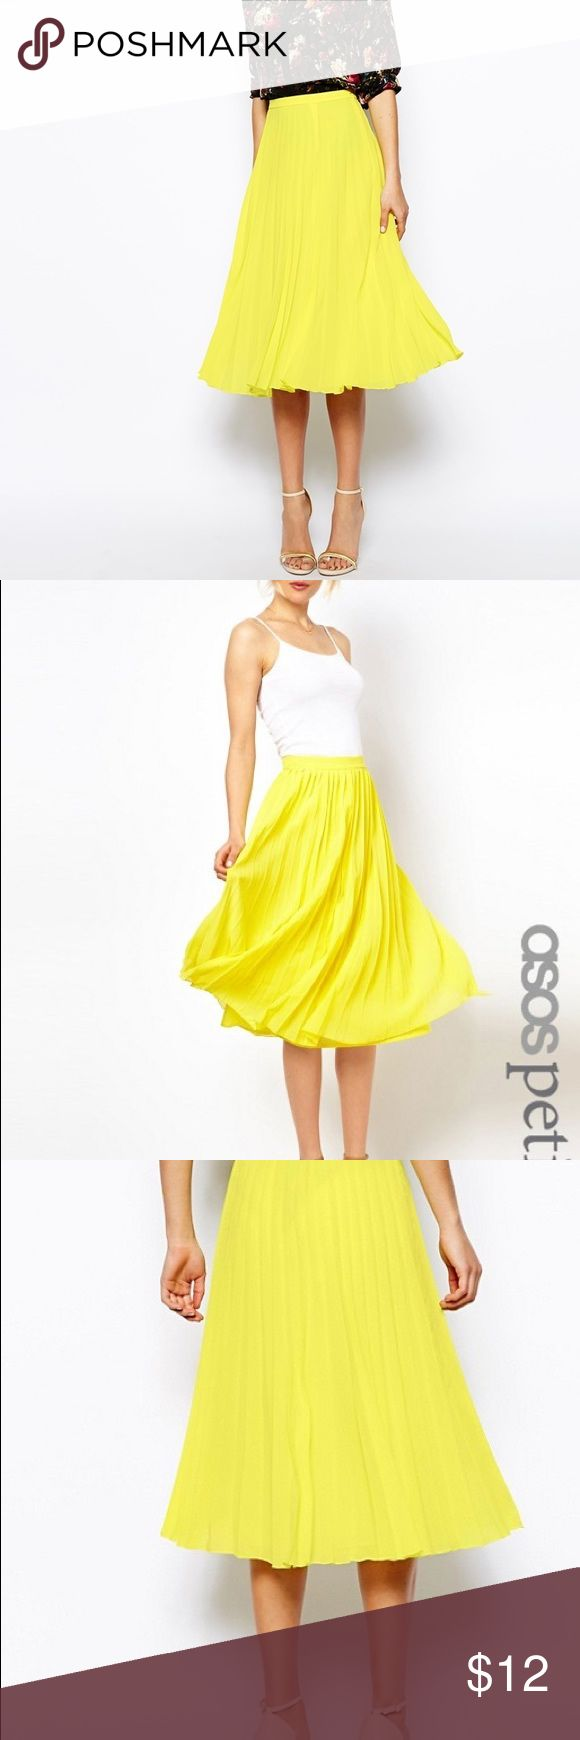 """Yellow plated midi skirt chiffon midi skirt with knife pleats. It is VERY sheer since I have removed the lining as it used to bunch up. There're a couple of snags that I have shown in the picture above but they aren't noticeable at all. The waist is 26"""" is is small for me now after 2 kids!! Sigh! There's no stretch on the waist. Perfect for this fall trend!! ASOS Petite Skirts Midi"""